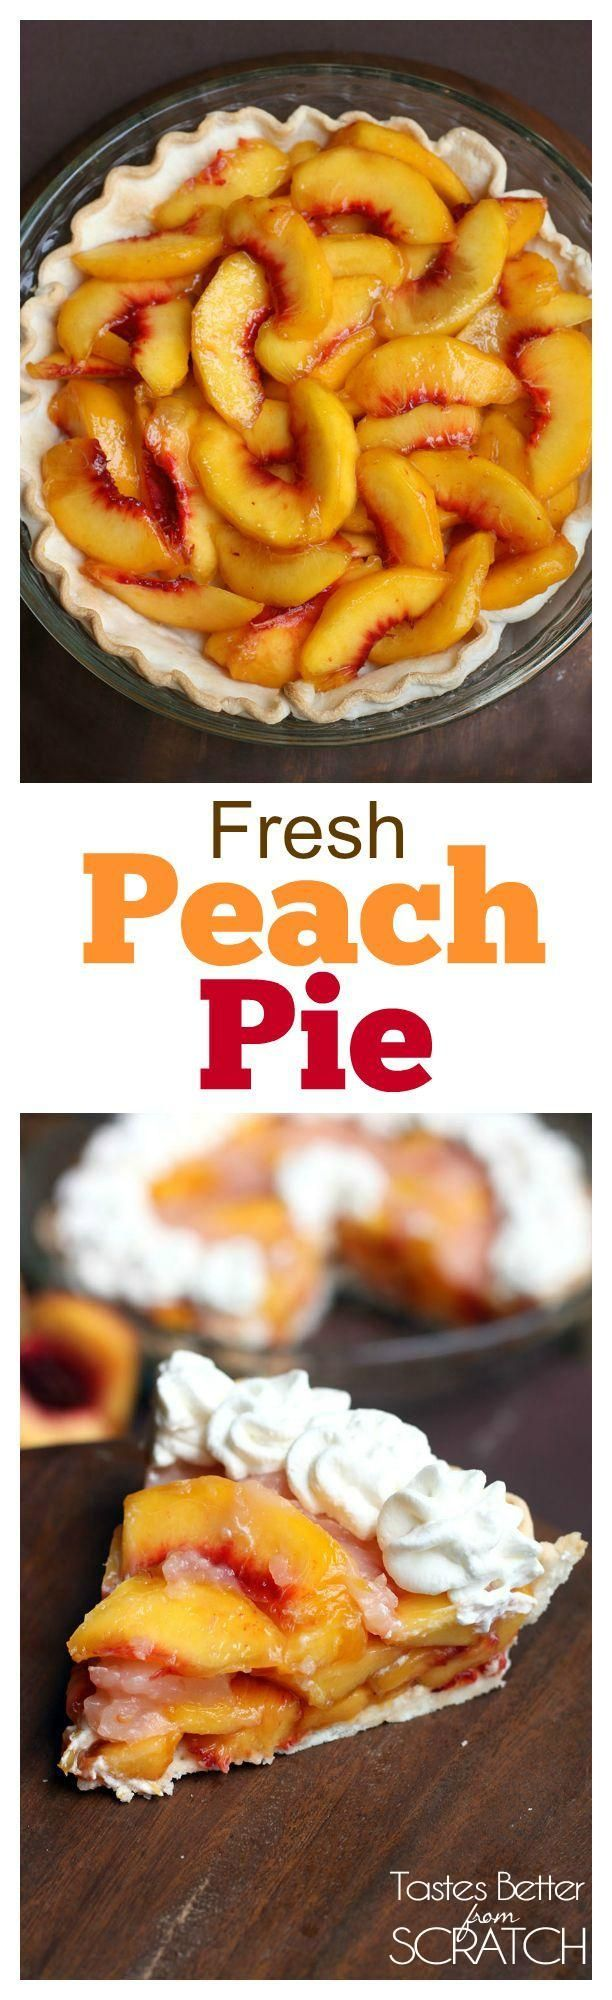 Fresh Peach Pie | Recipe | Peach pie recipes, Pie recipes ...